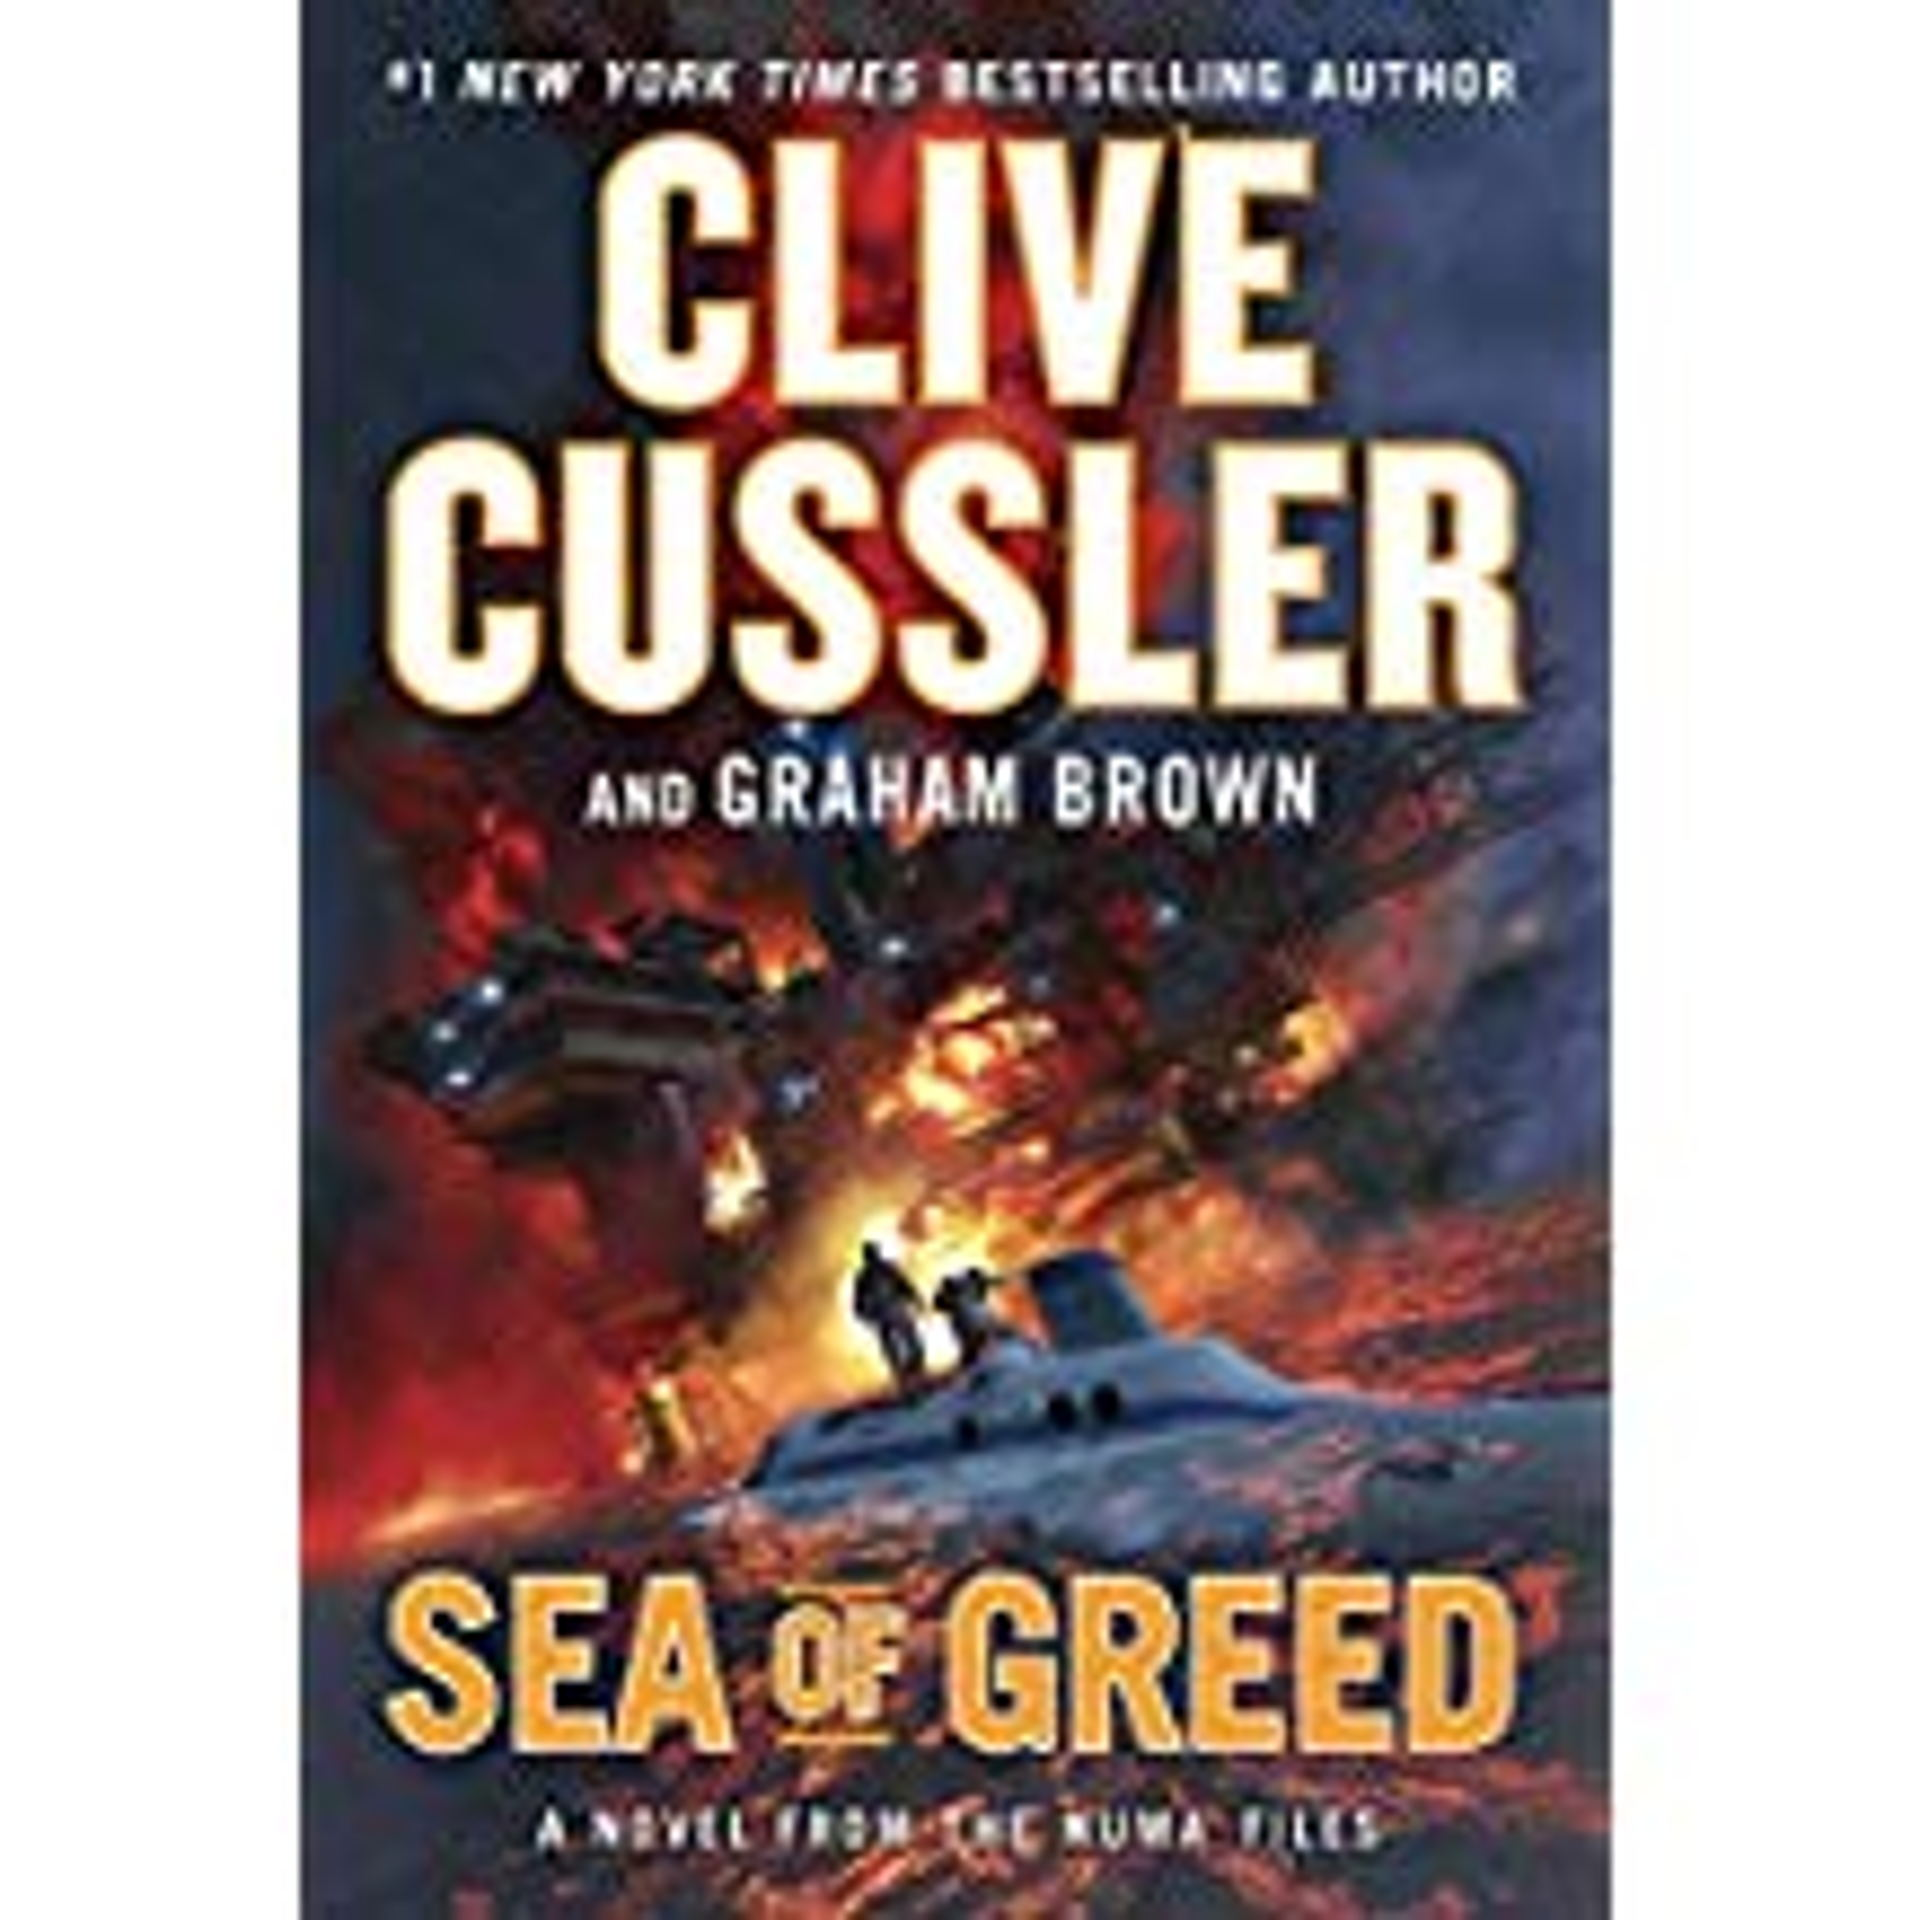 Sea of Greed, a novel from the Numa Files by Clive Cussler and Graham Brown